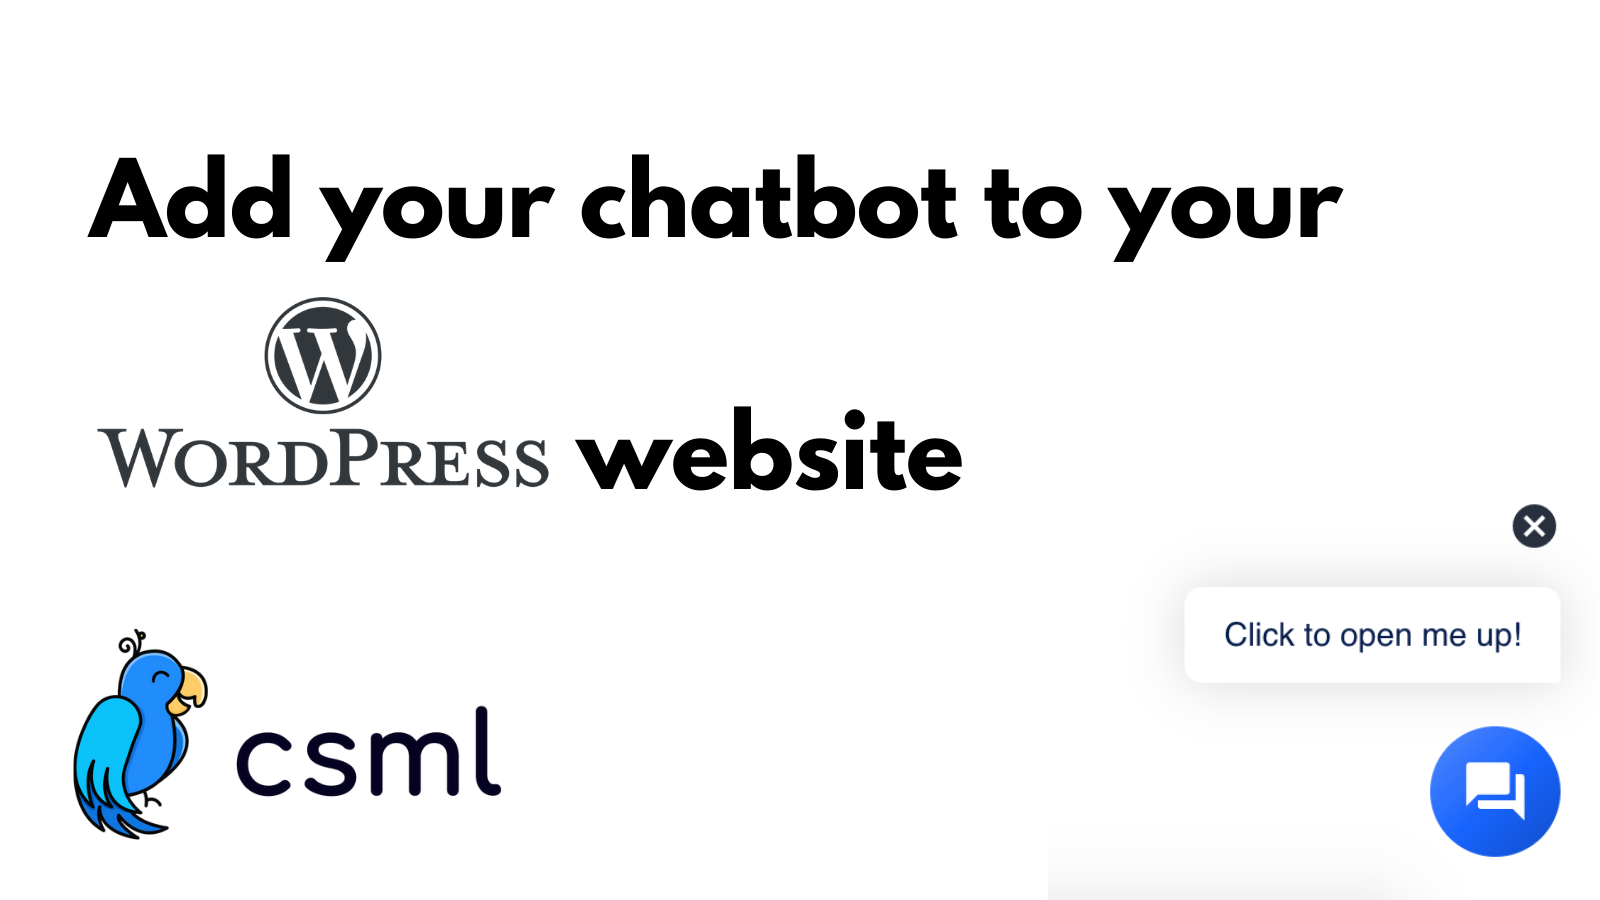 How To Add a Chatbot To Your WordPress Website